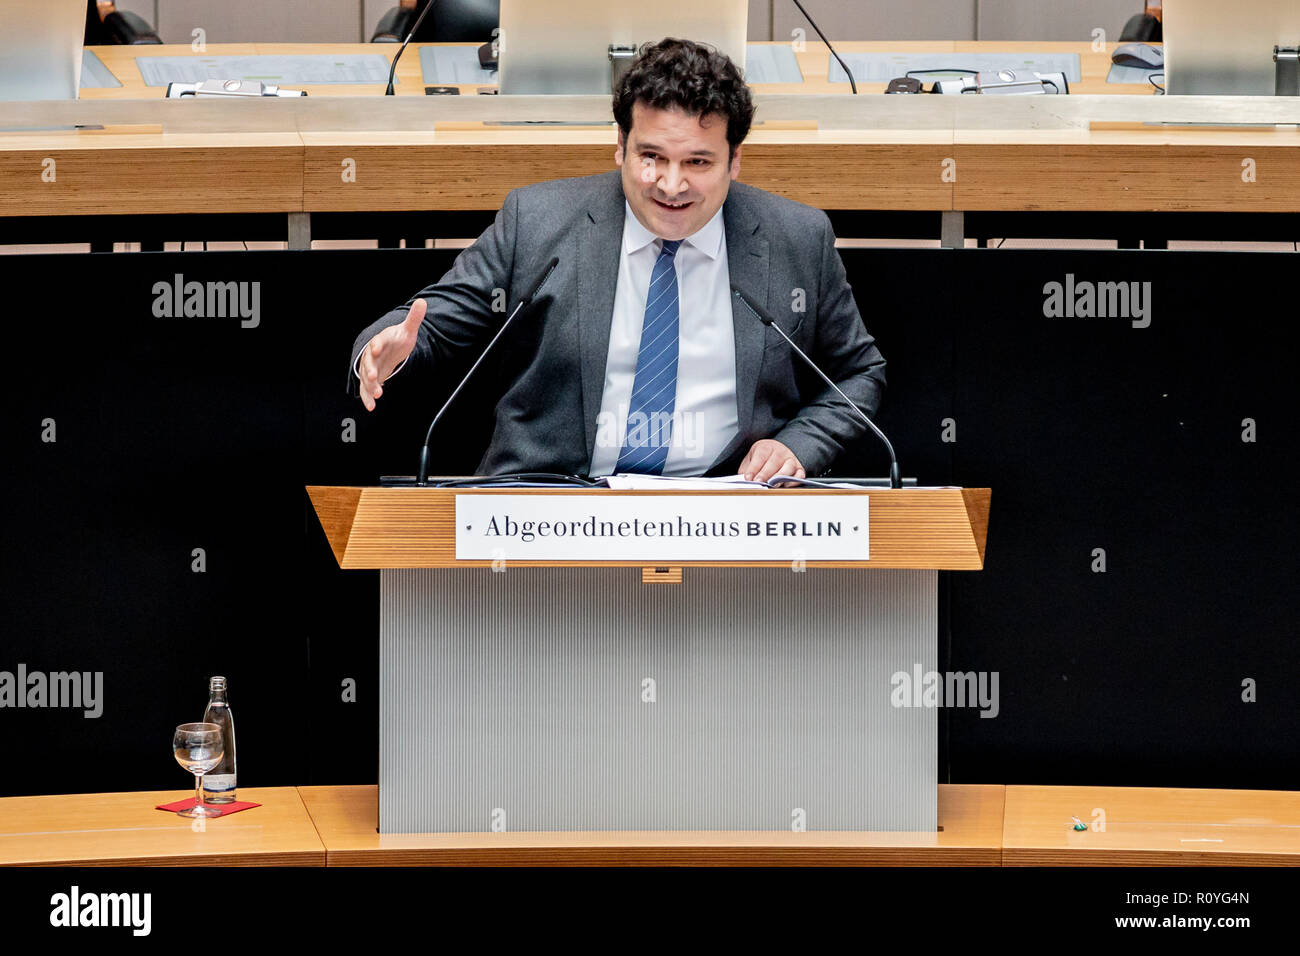 Berlin, Germany. 08th Nov, 2018. Gideon Joffe, Chairman of the Jewish Community of Berlin, speaks at the commemoration ceremony in the House of Representatives for the 80th anniversary of the November pogroms of 1938. Credit: Christoph Soeder/dpa/Alamy Live News - Stock Image